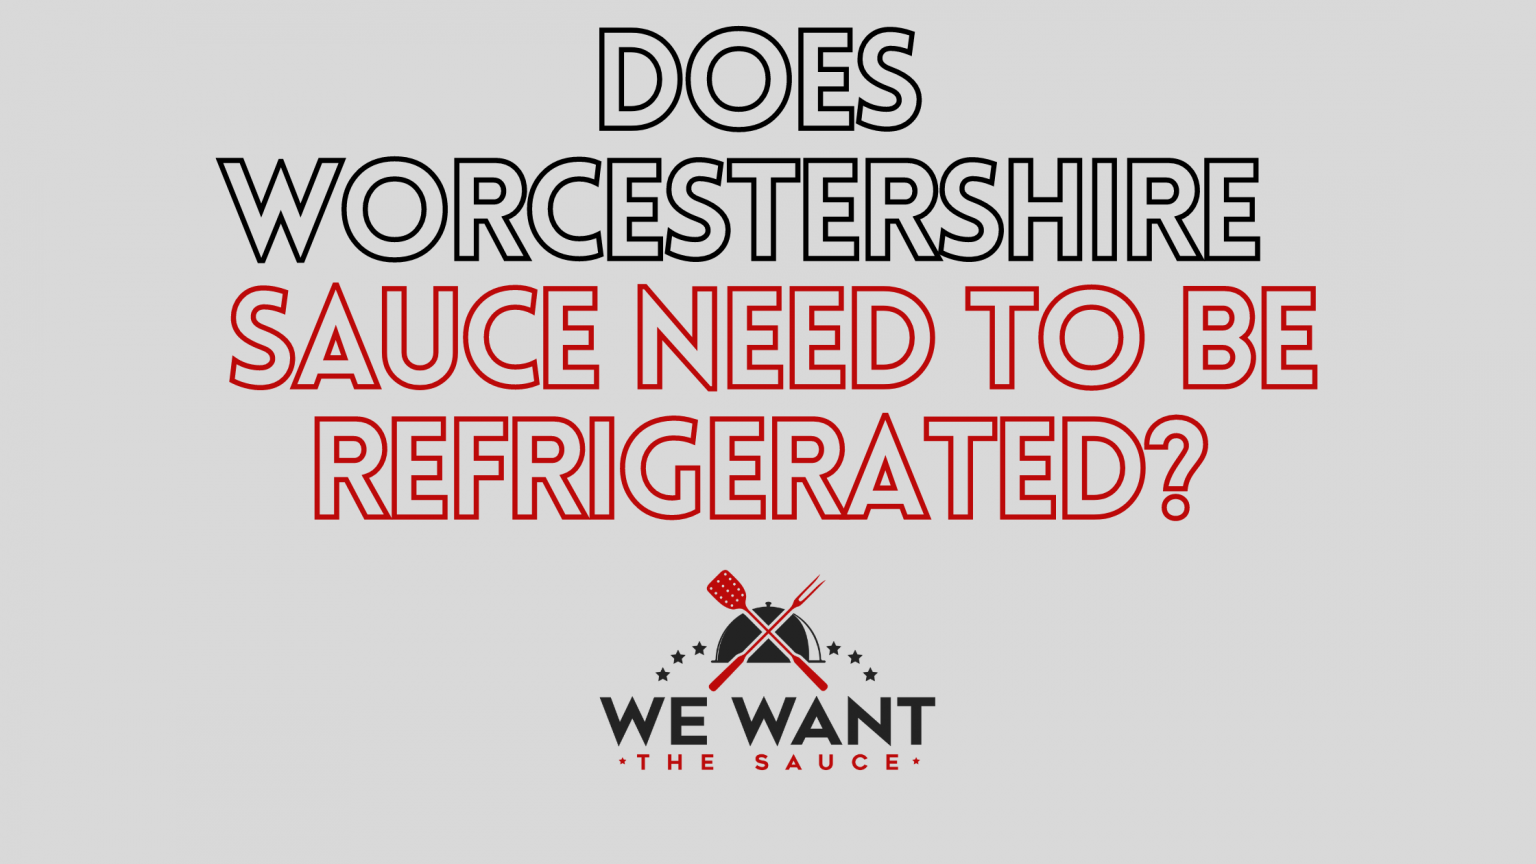 Does Worcestershire Sauce Need To Be Refrigerated?